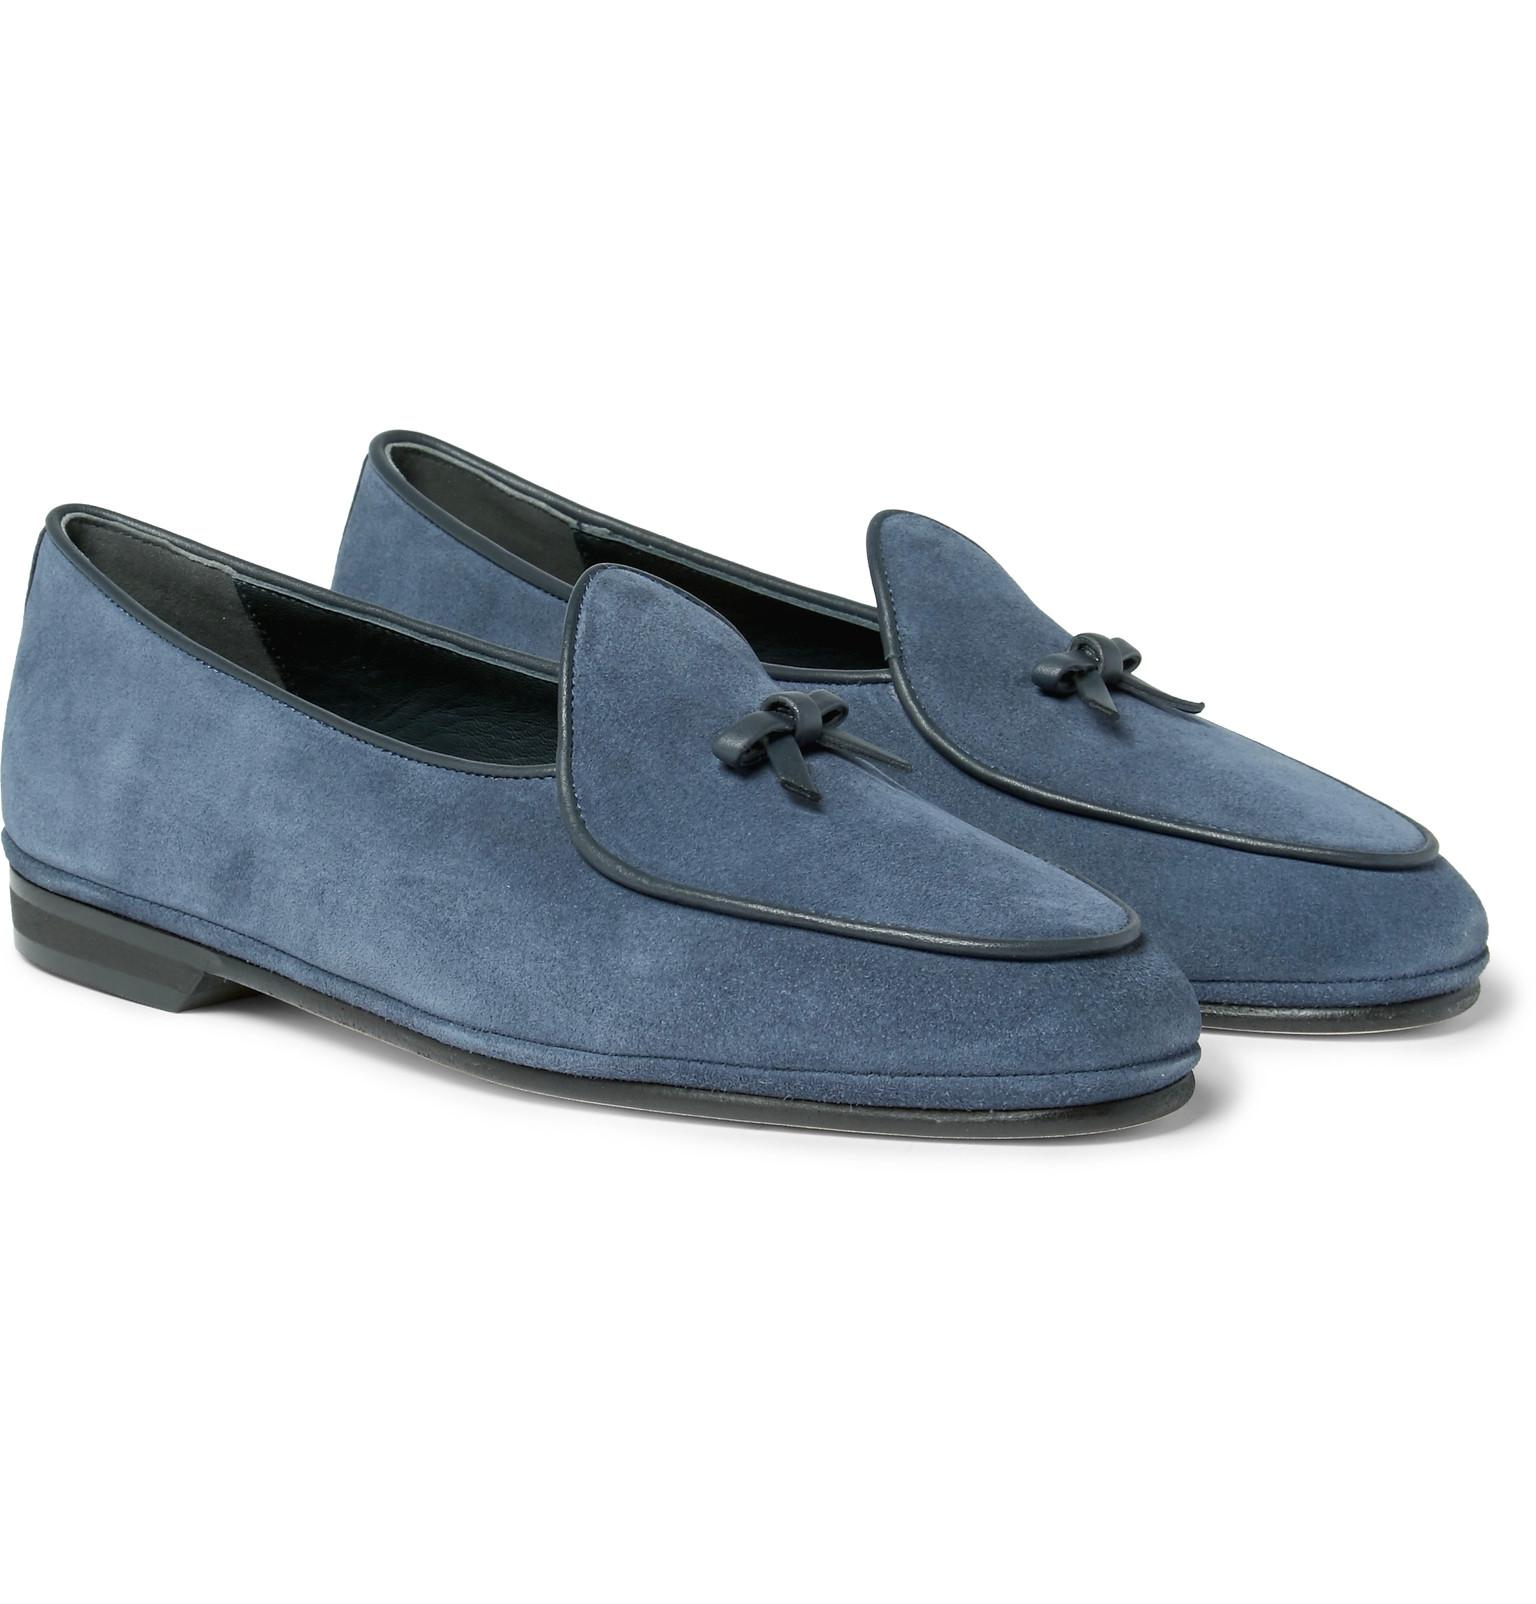 sale high quality for nice for sale Rubinacci Marphy Leather-Trimmed Suede Loafers 2015 cheap online outlet perfect cheap sale visa payment sPF4AEkF